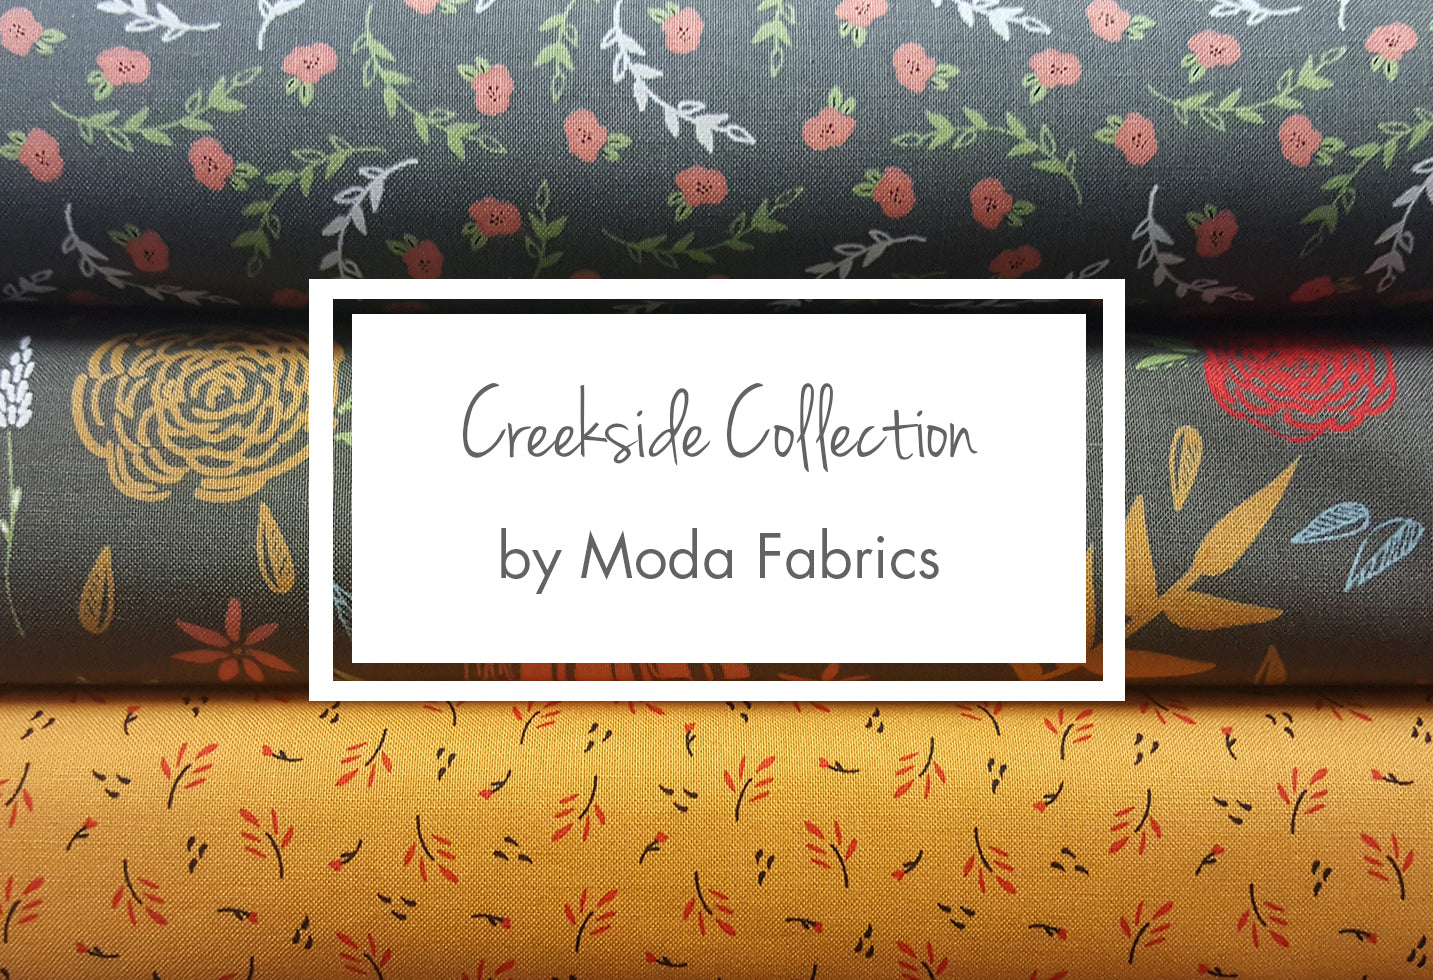 Sew much more sewing quilting machine store austin texas creekside collection from moda fabrics gumiabroncs Image collections